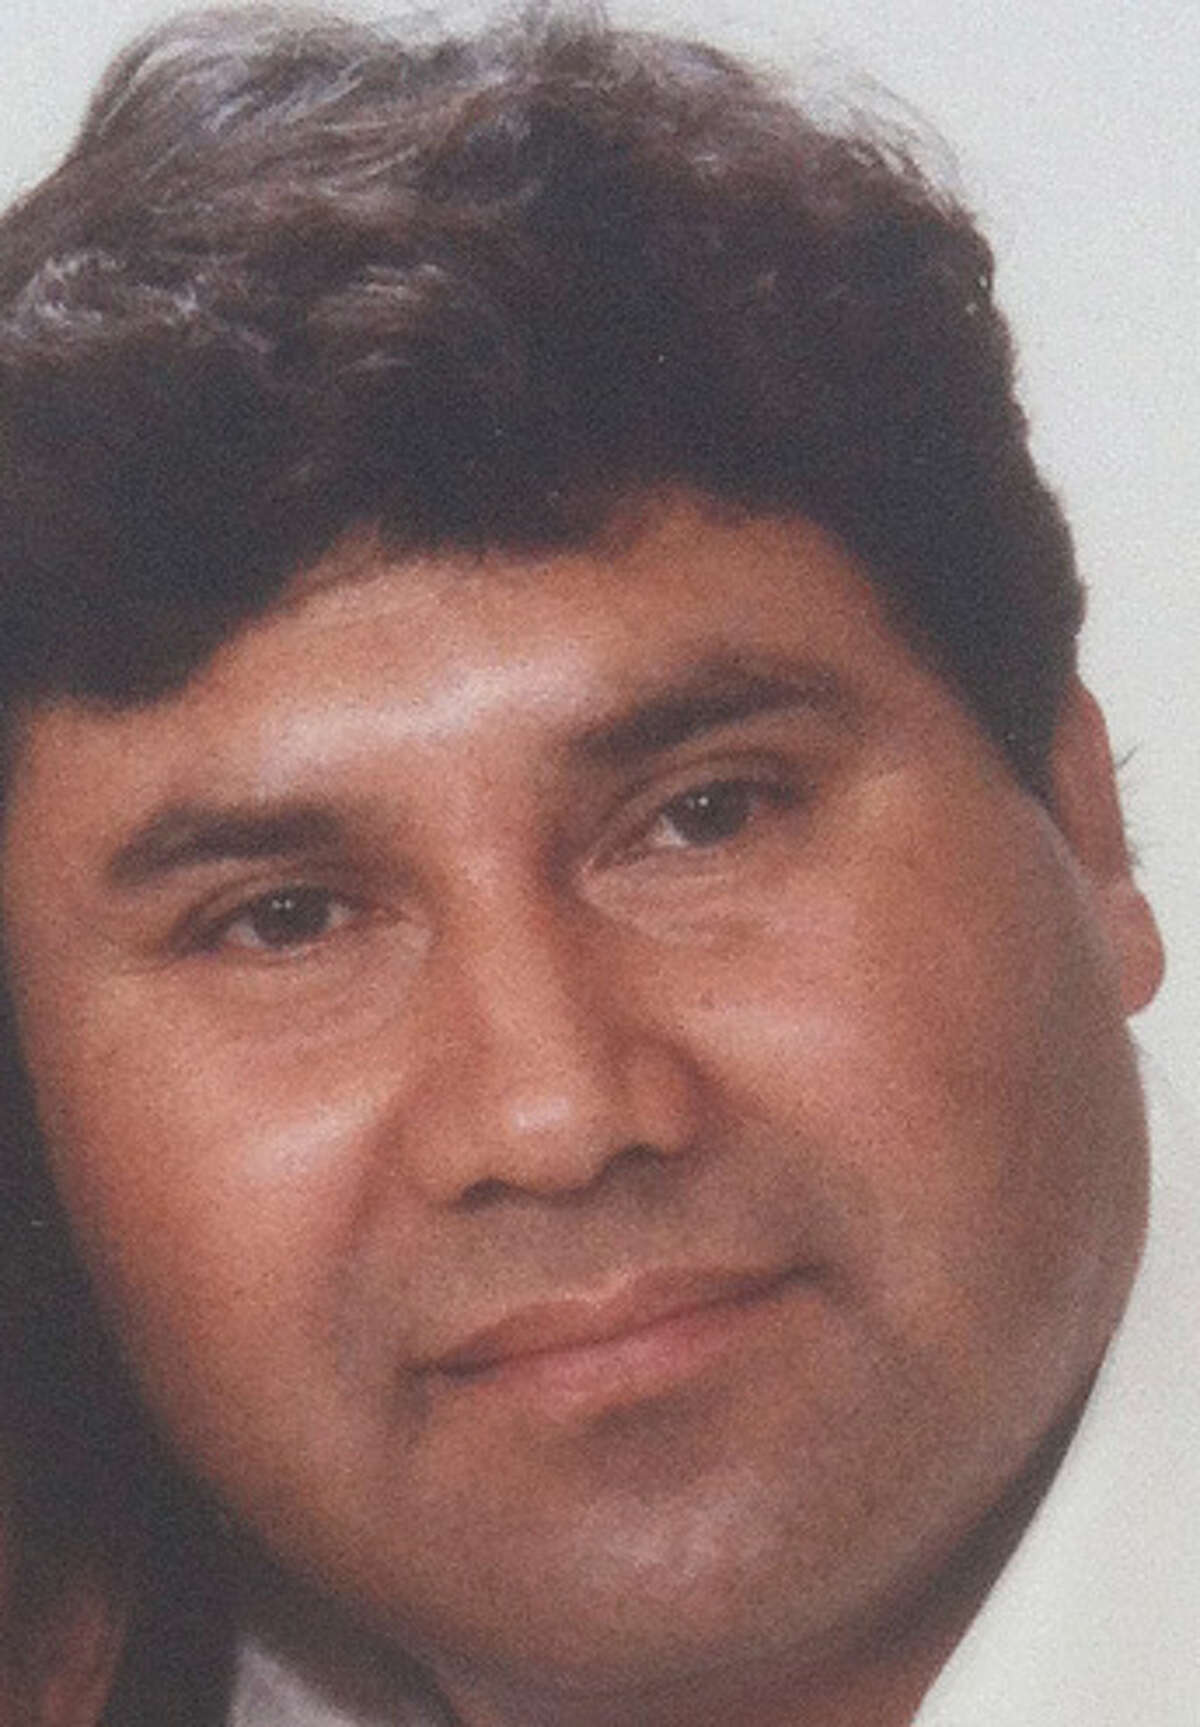 Faustino Alonso, 59, was shot to death at an East Side car wash, just two blocks away from his home, Friday night.